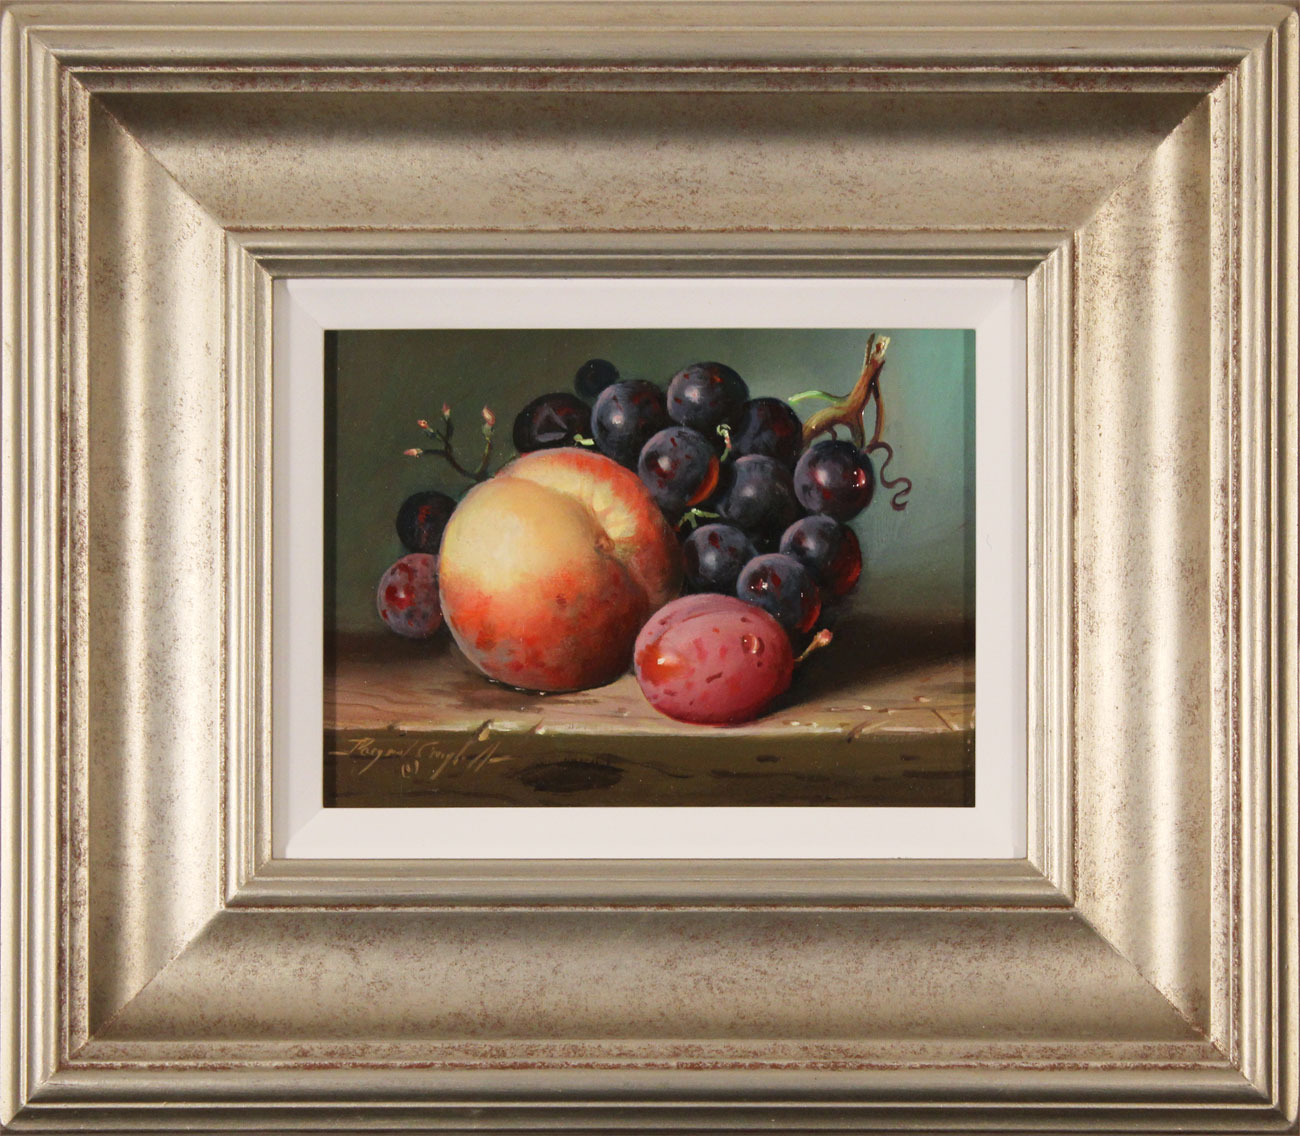 Raymond Campbell, Original oil painting on panel, Peach, Plum and Grapes, click to enlarge